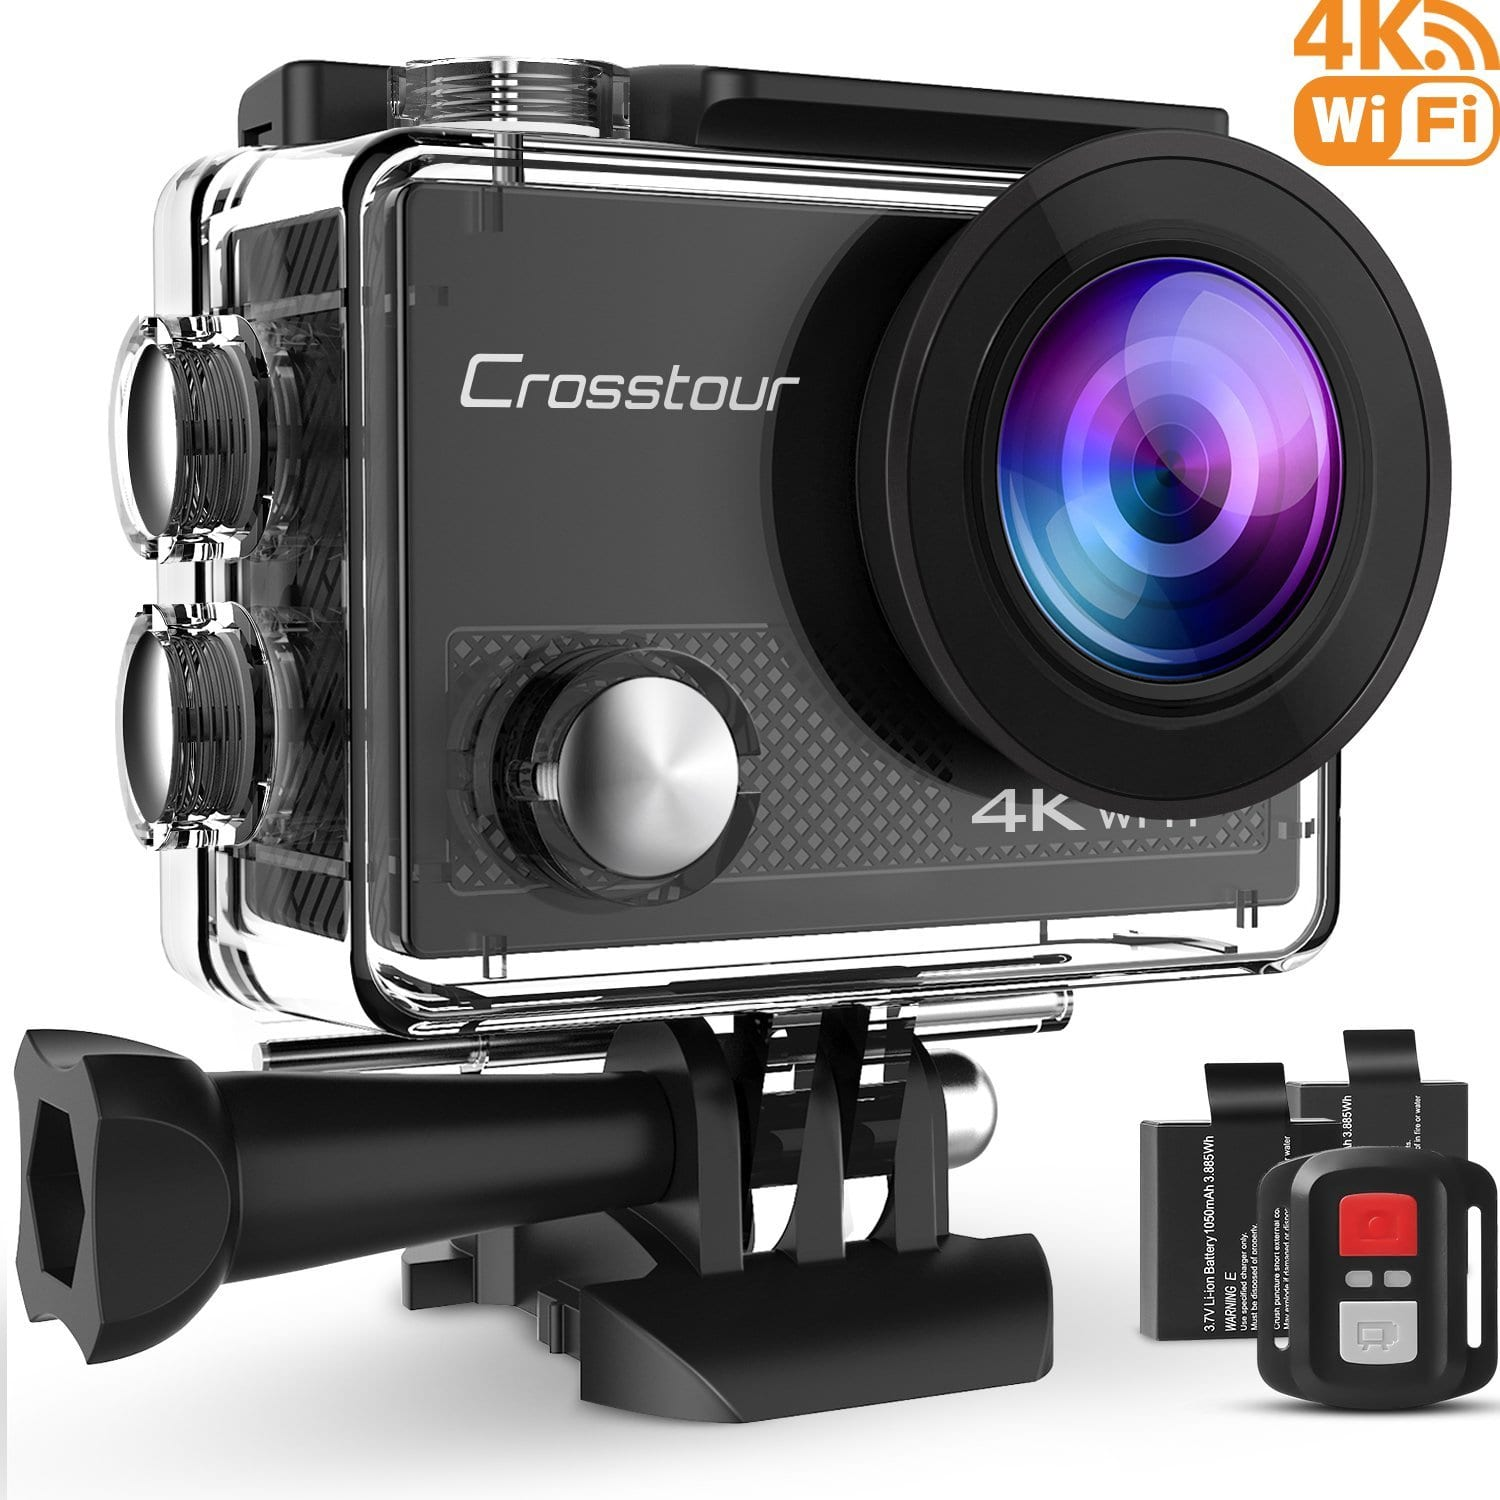 Top 10 Best 4K Action Cameras Reviews In 2019